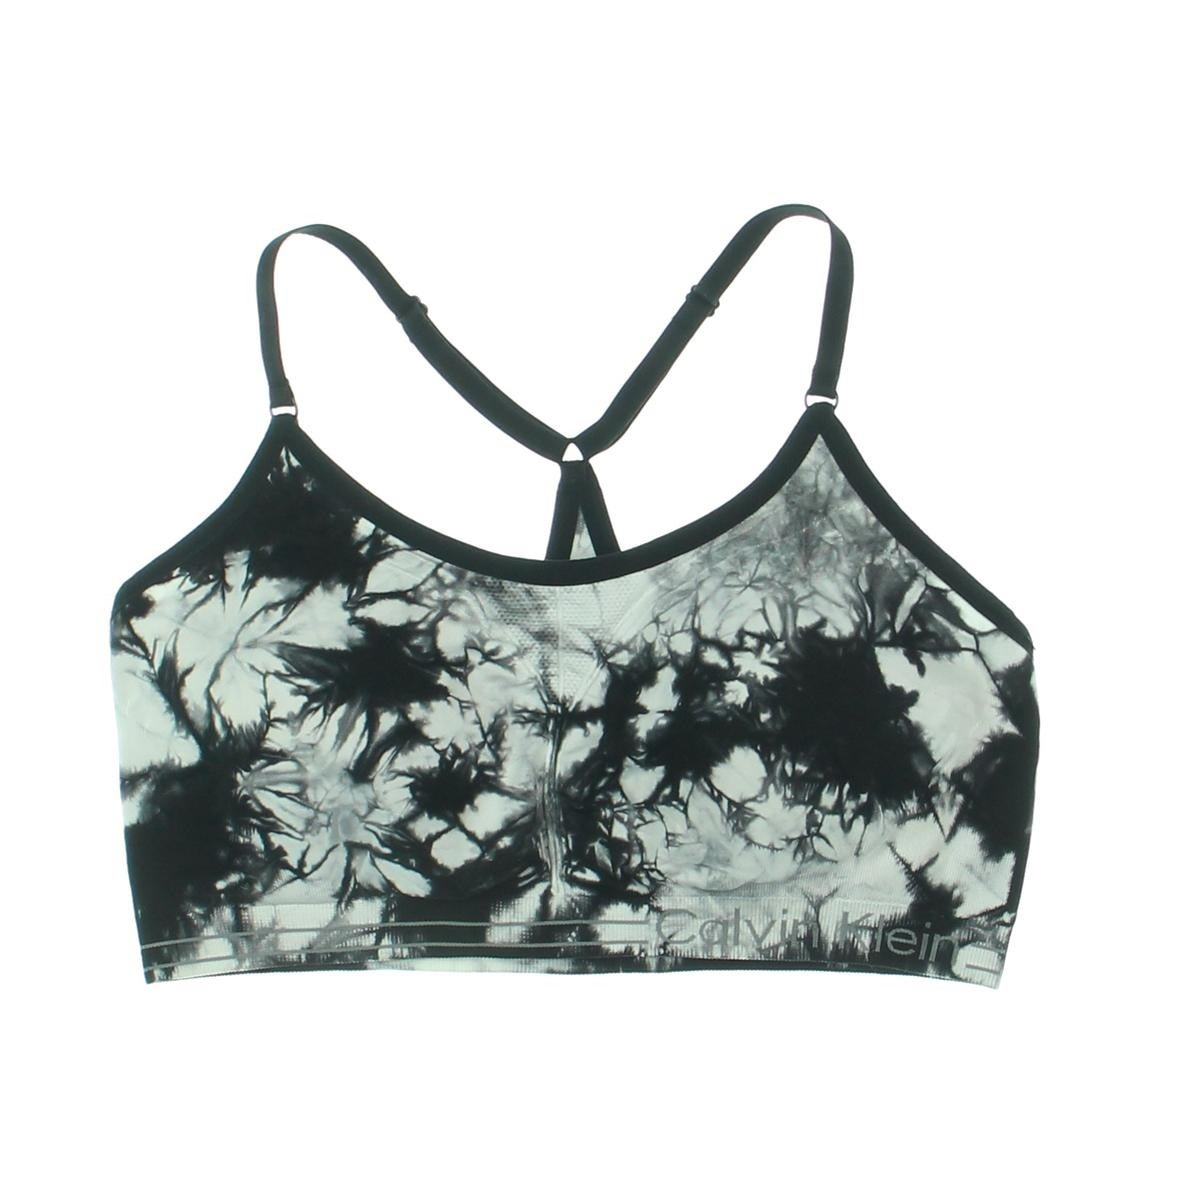 096f50d862 Shop Calvin Klein Performance Womens Sports Bra Tie-Dye Low-Impact - Free  Shipping On Orders Over  45 - Overstock - 17355428